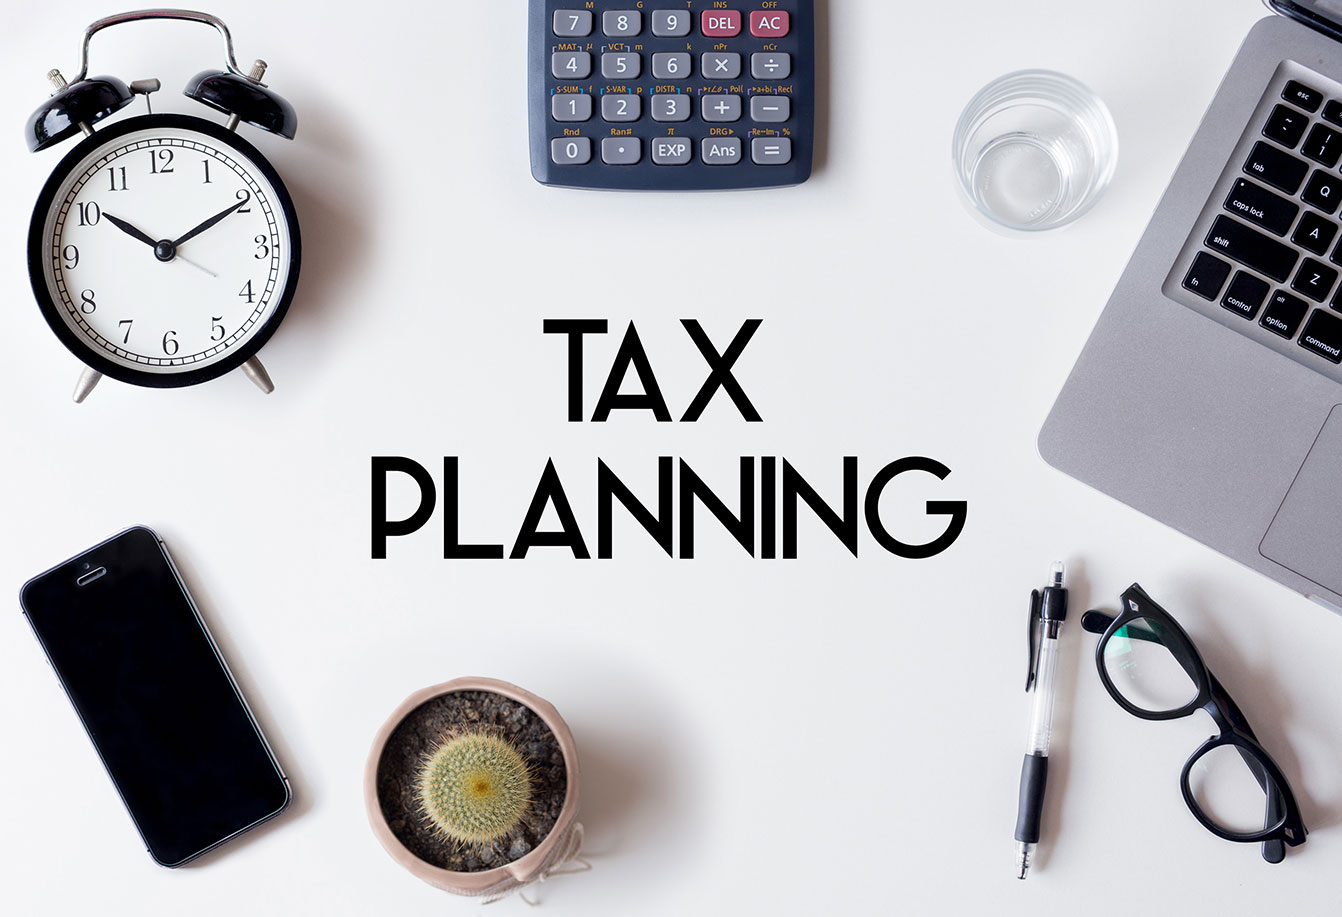 Tax Planning service image